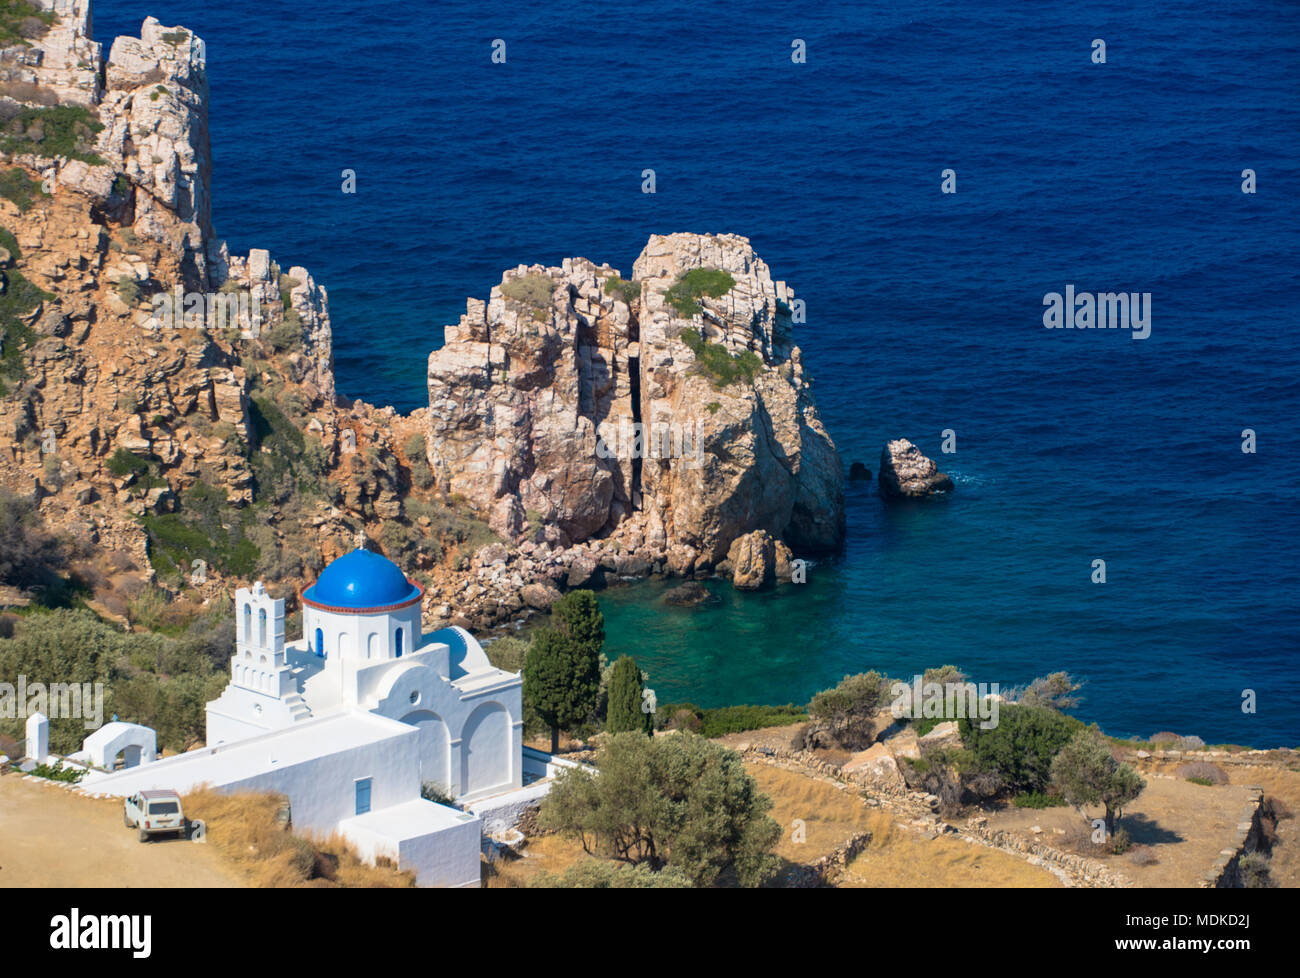 view at beautiful located church at Poulati, Sifnos, Greece Stock Photo